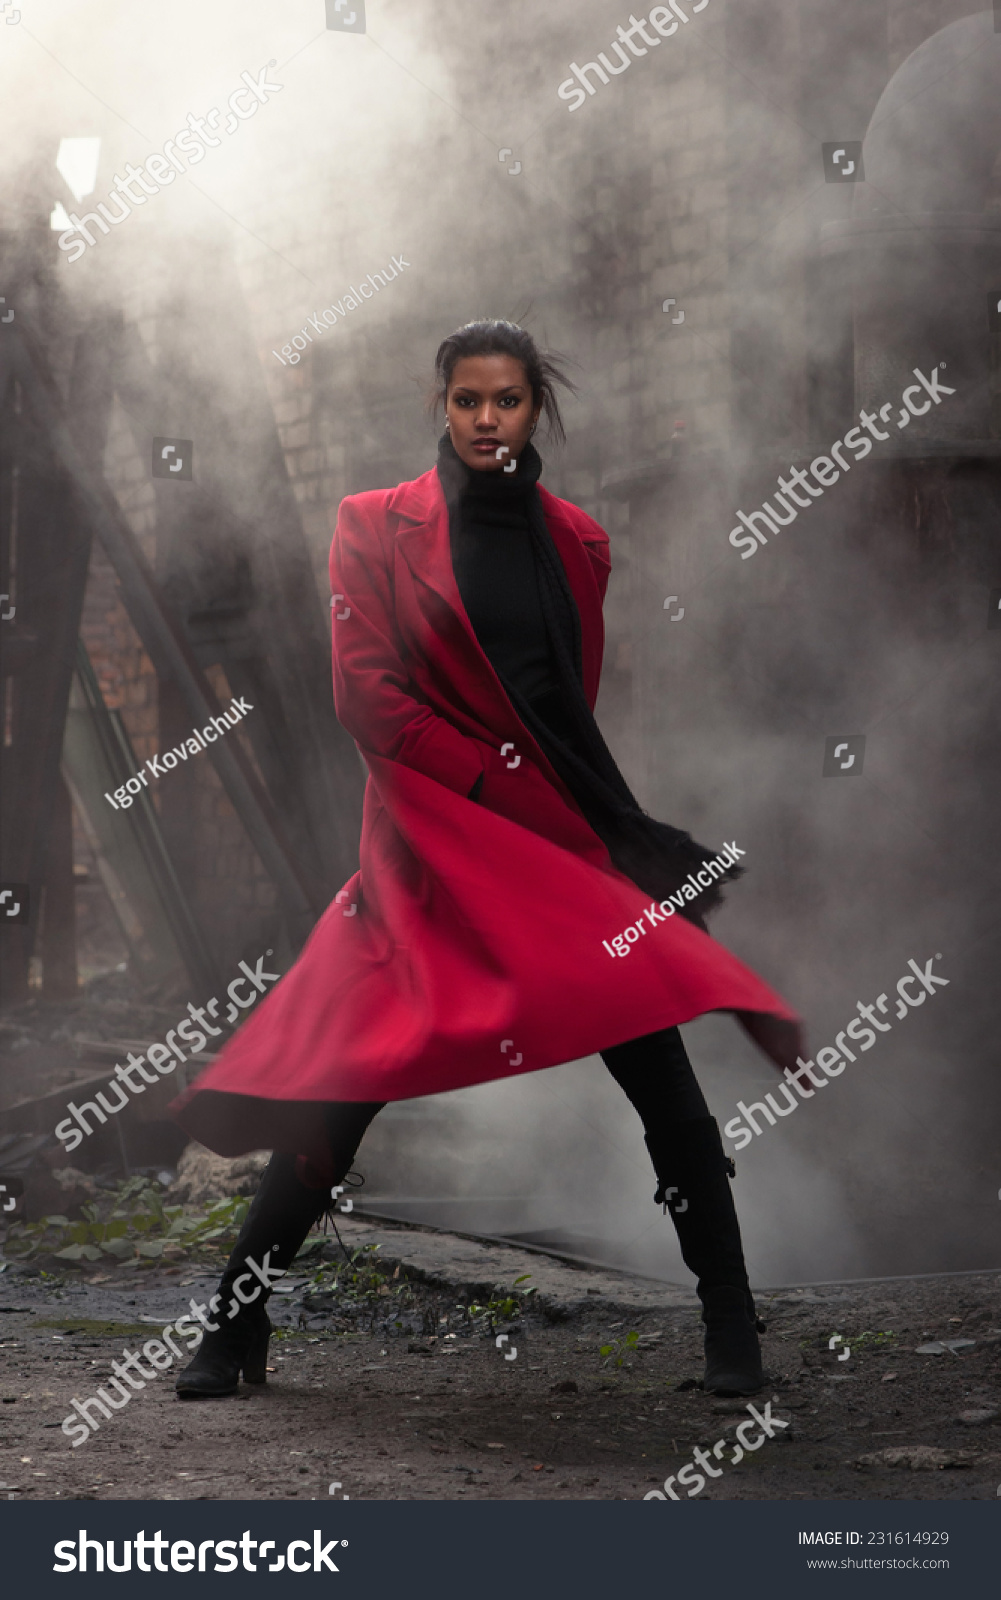 Woman Red Coat Stock Photo 231614929 - Shutterstock